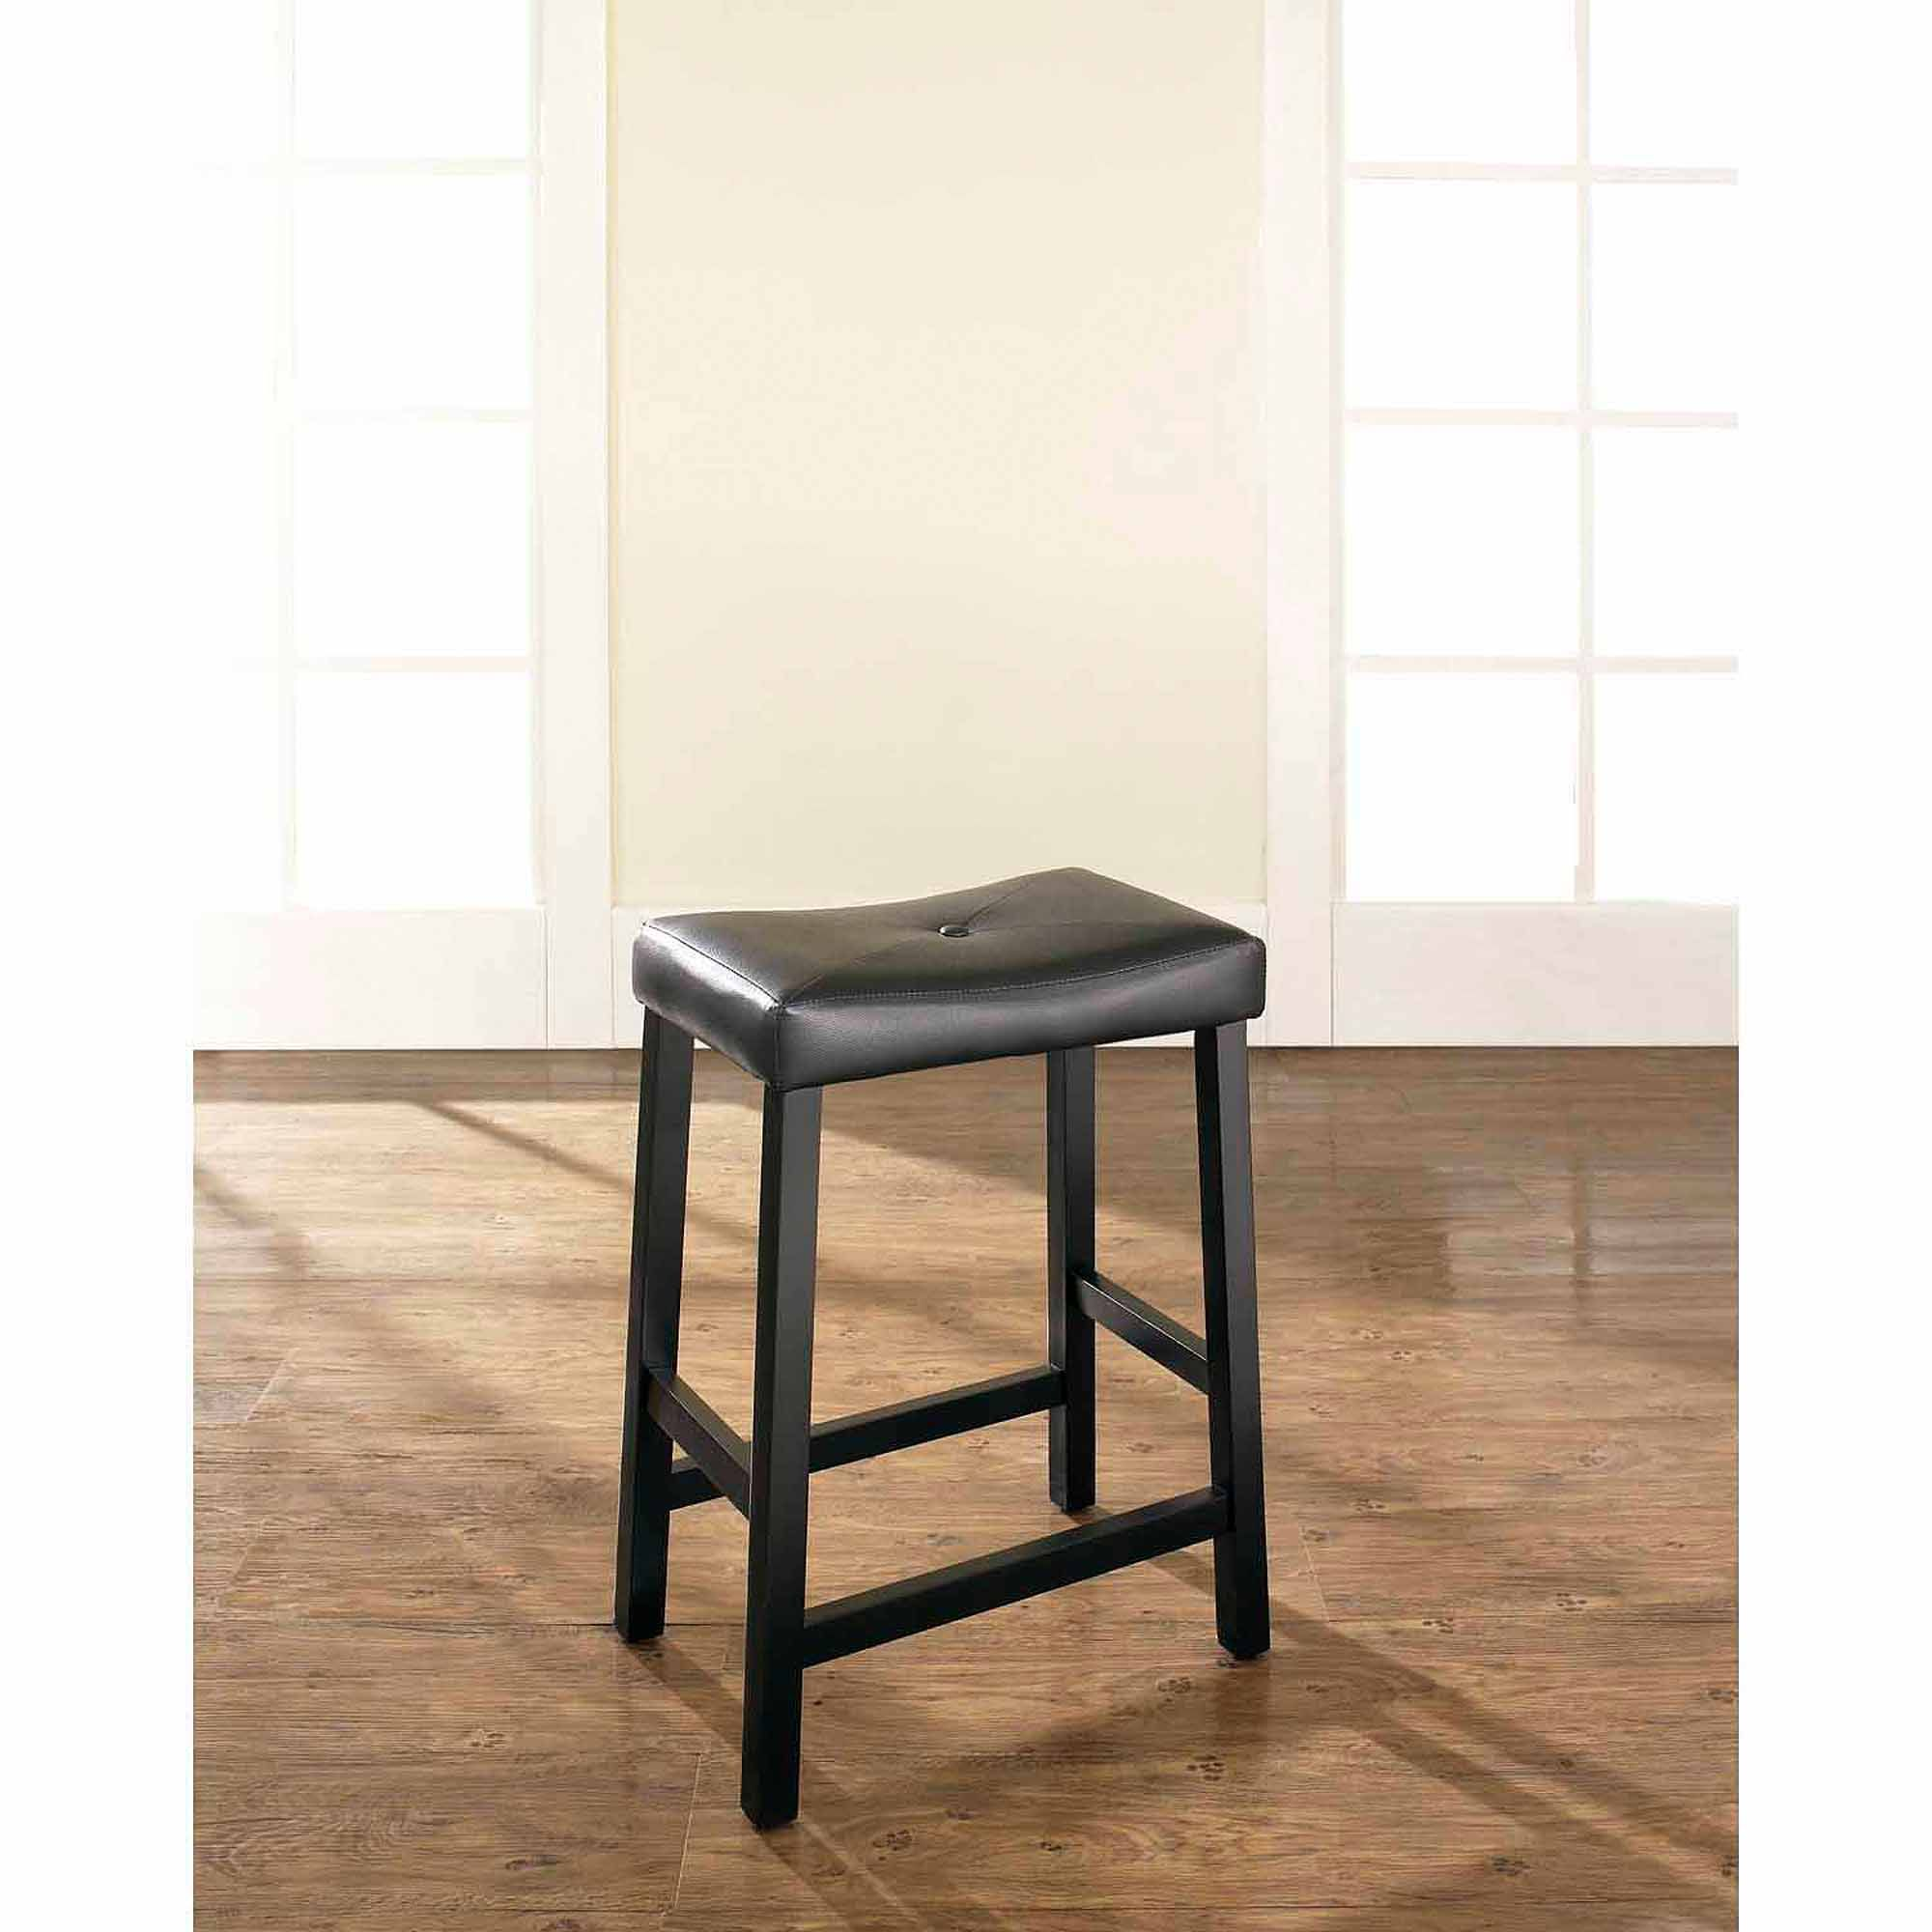 The Crosley Furniture Upholstered Bar Stool That Comes With A